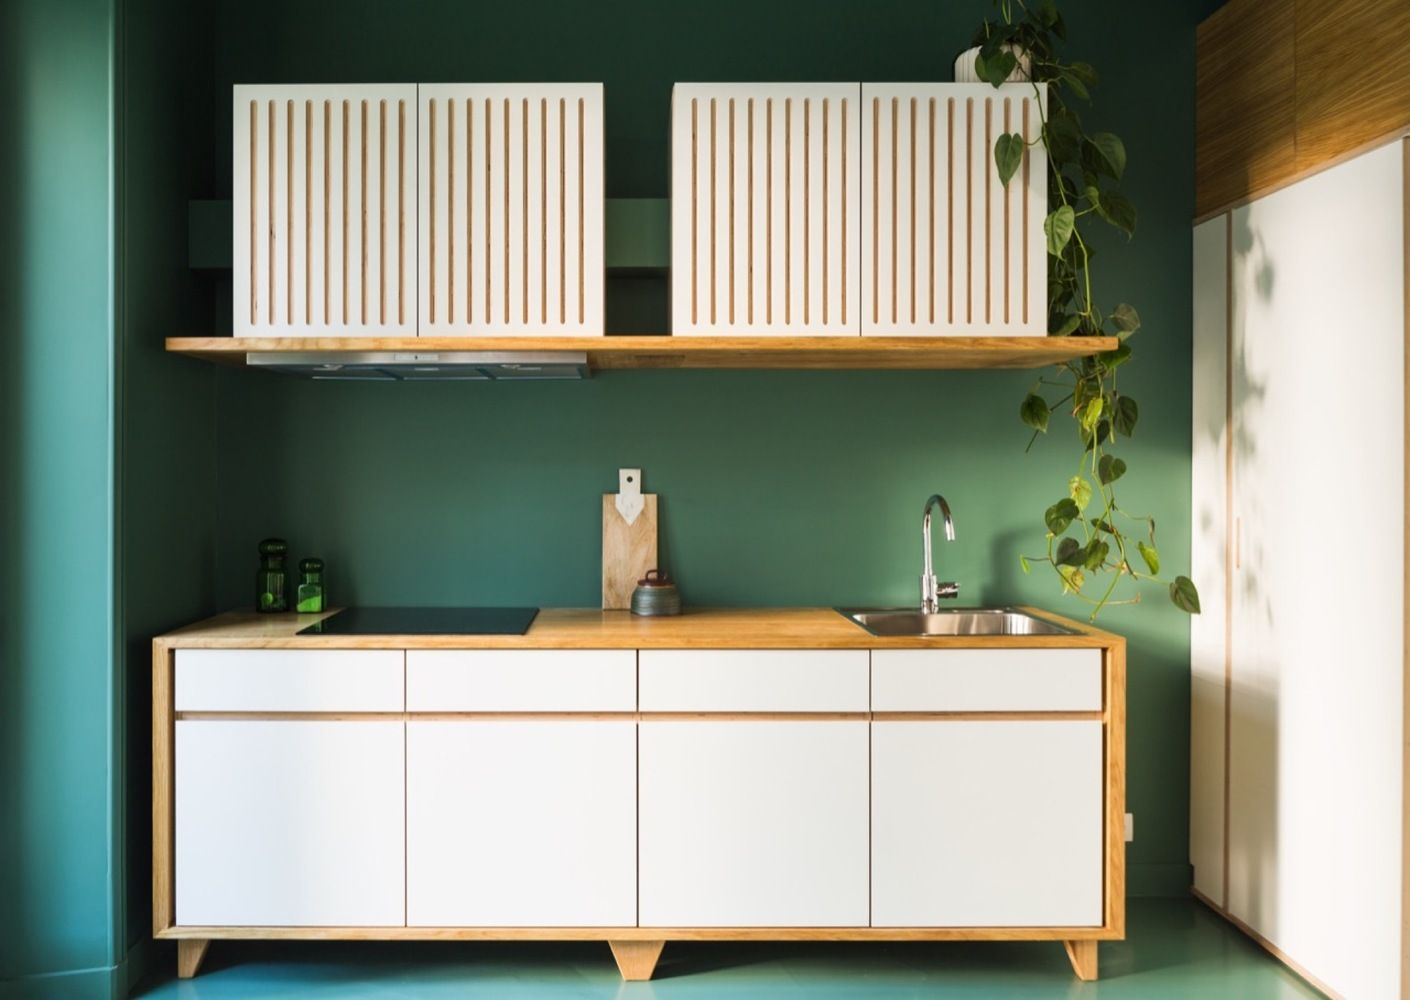 Gallery of Townhouse / Les Ateliers Tristan & Sagitta - 2